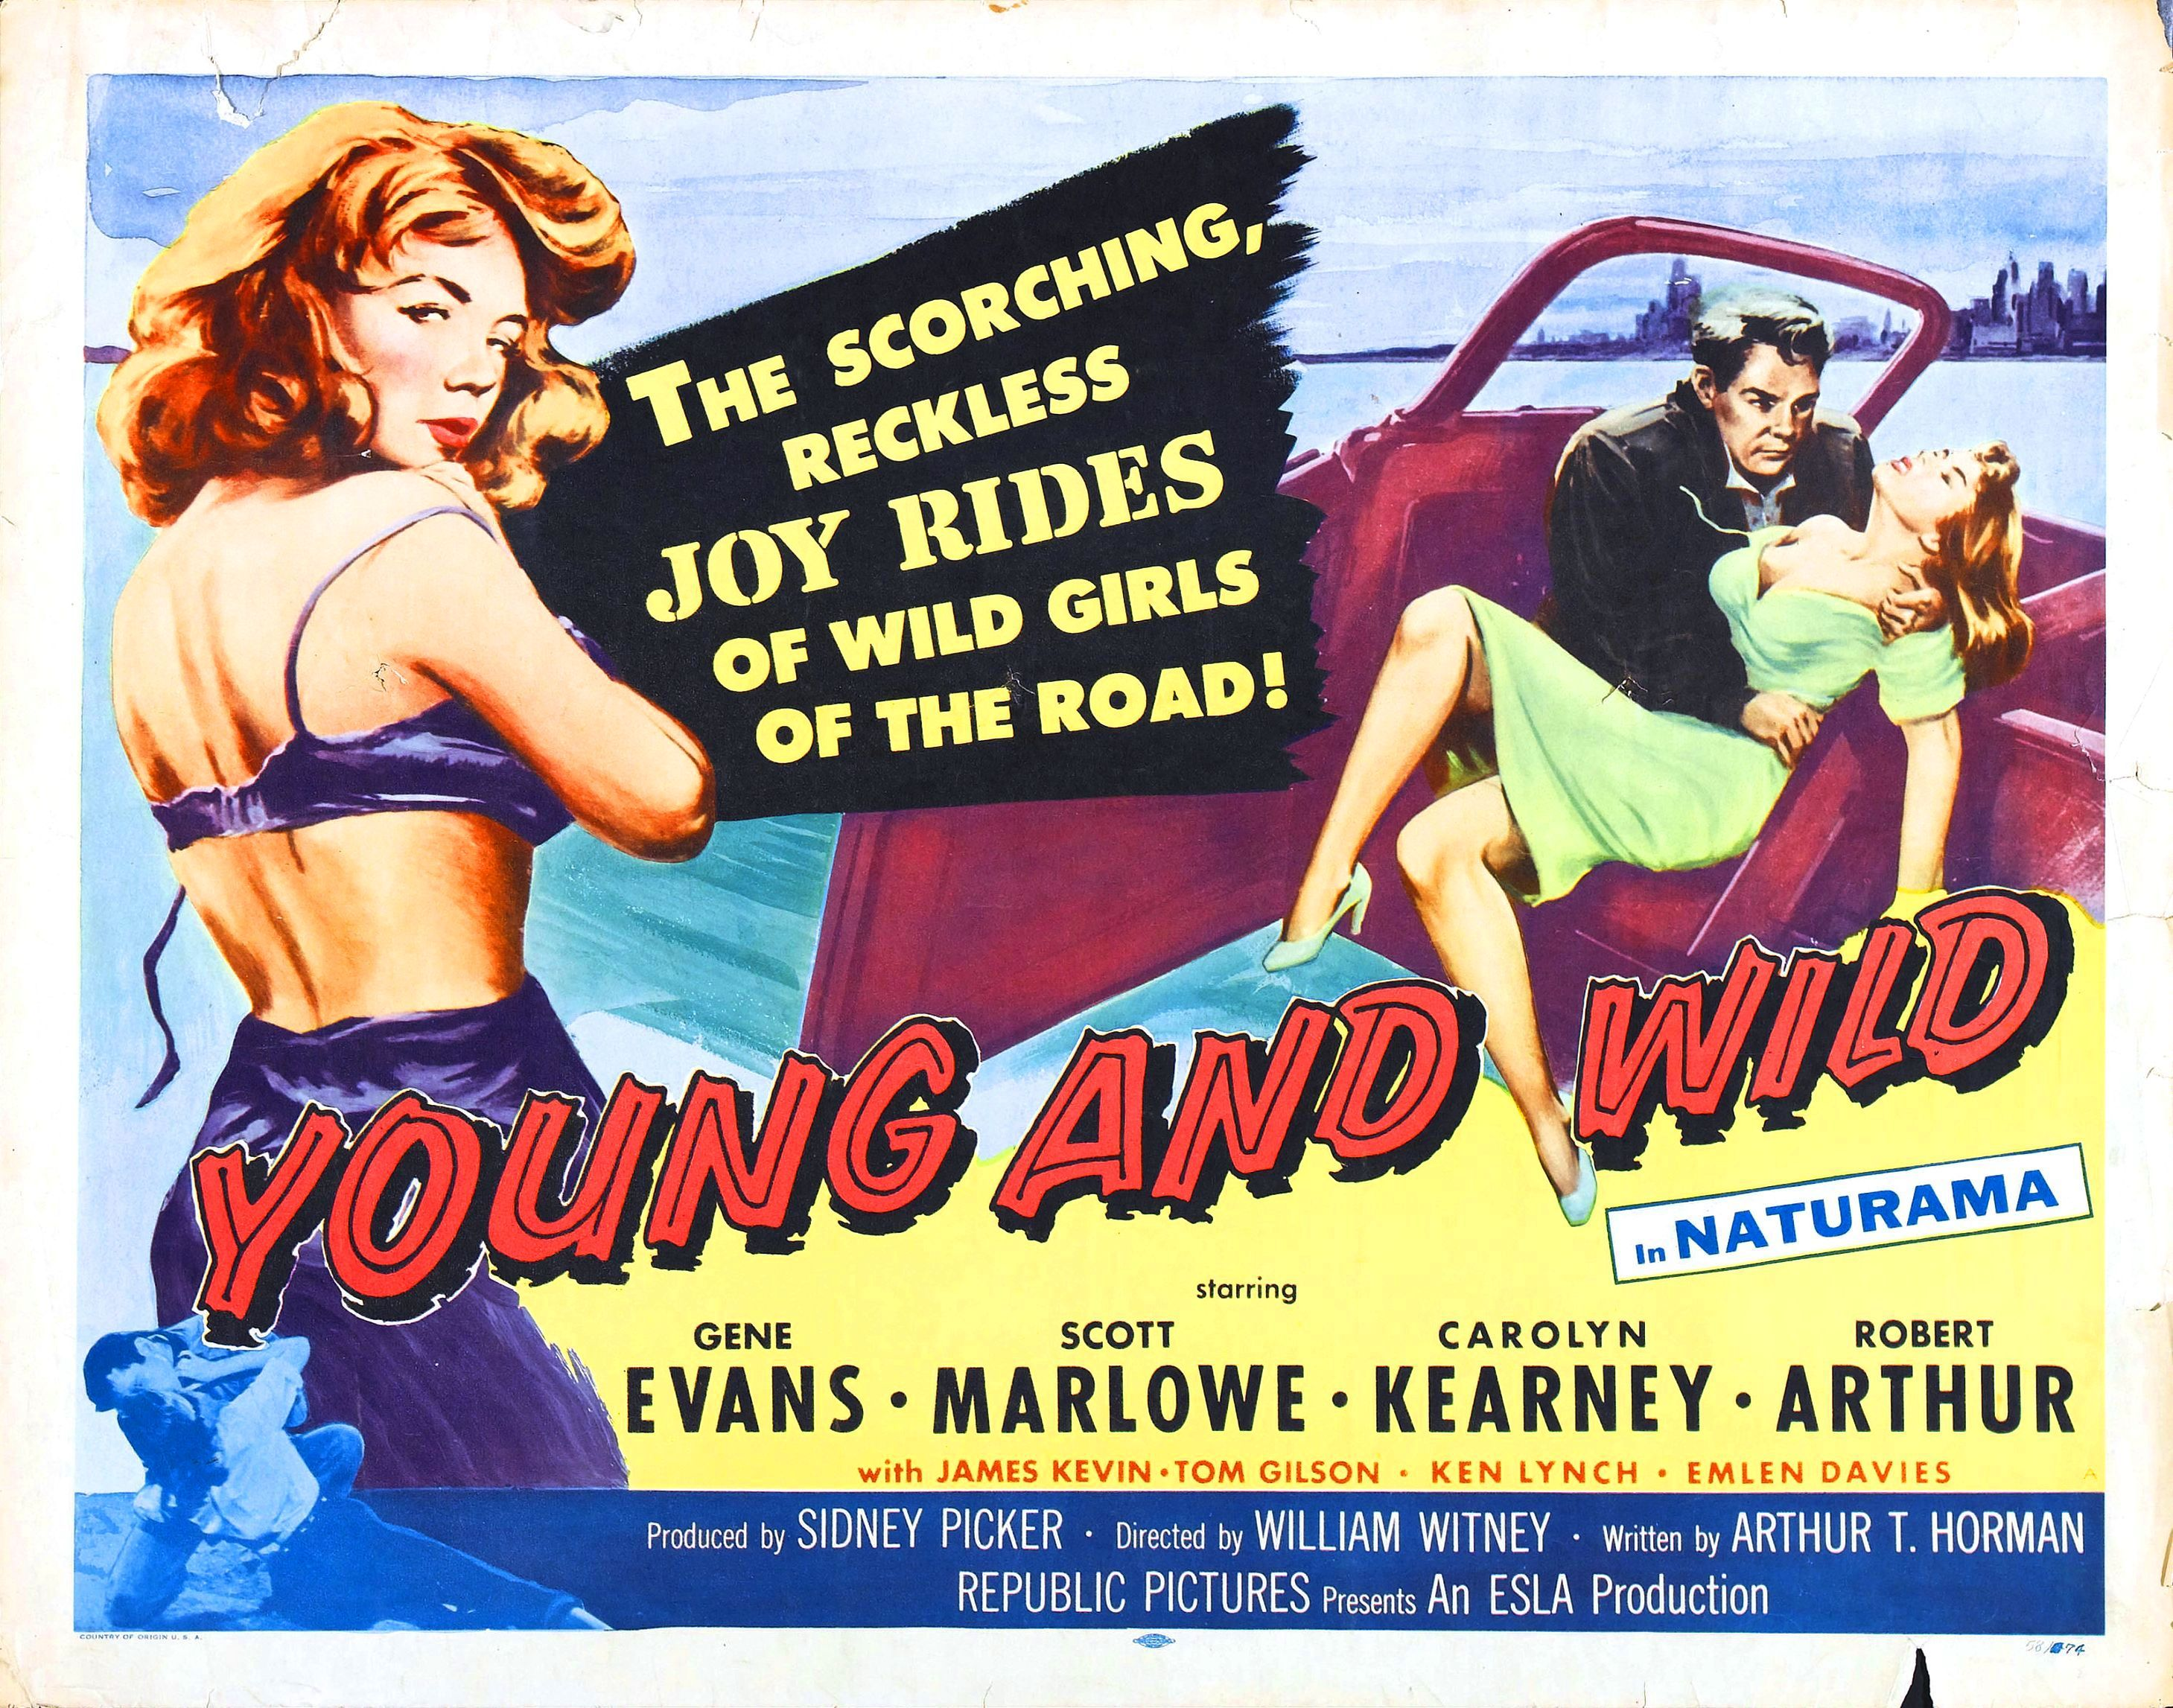 Poster design 50s - Another Old 50 S Era Film Poster Design Inspiration For Today Ilustration Salute For The Illustrator